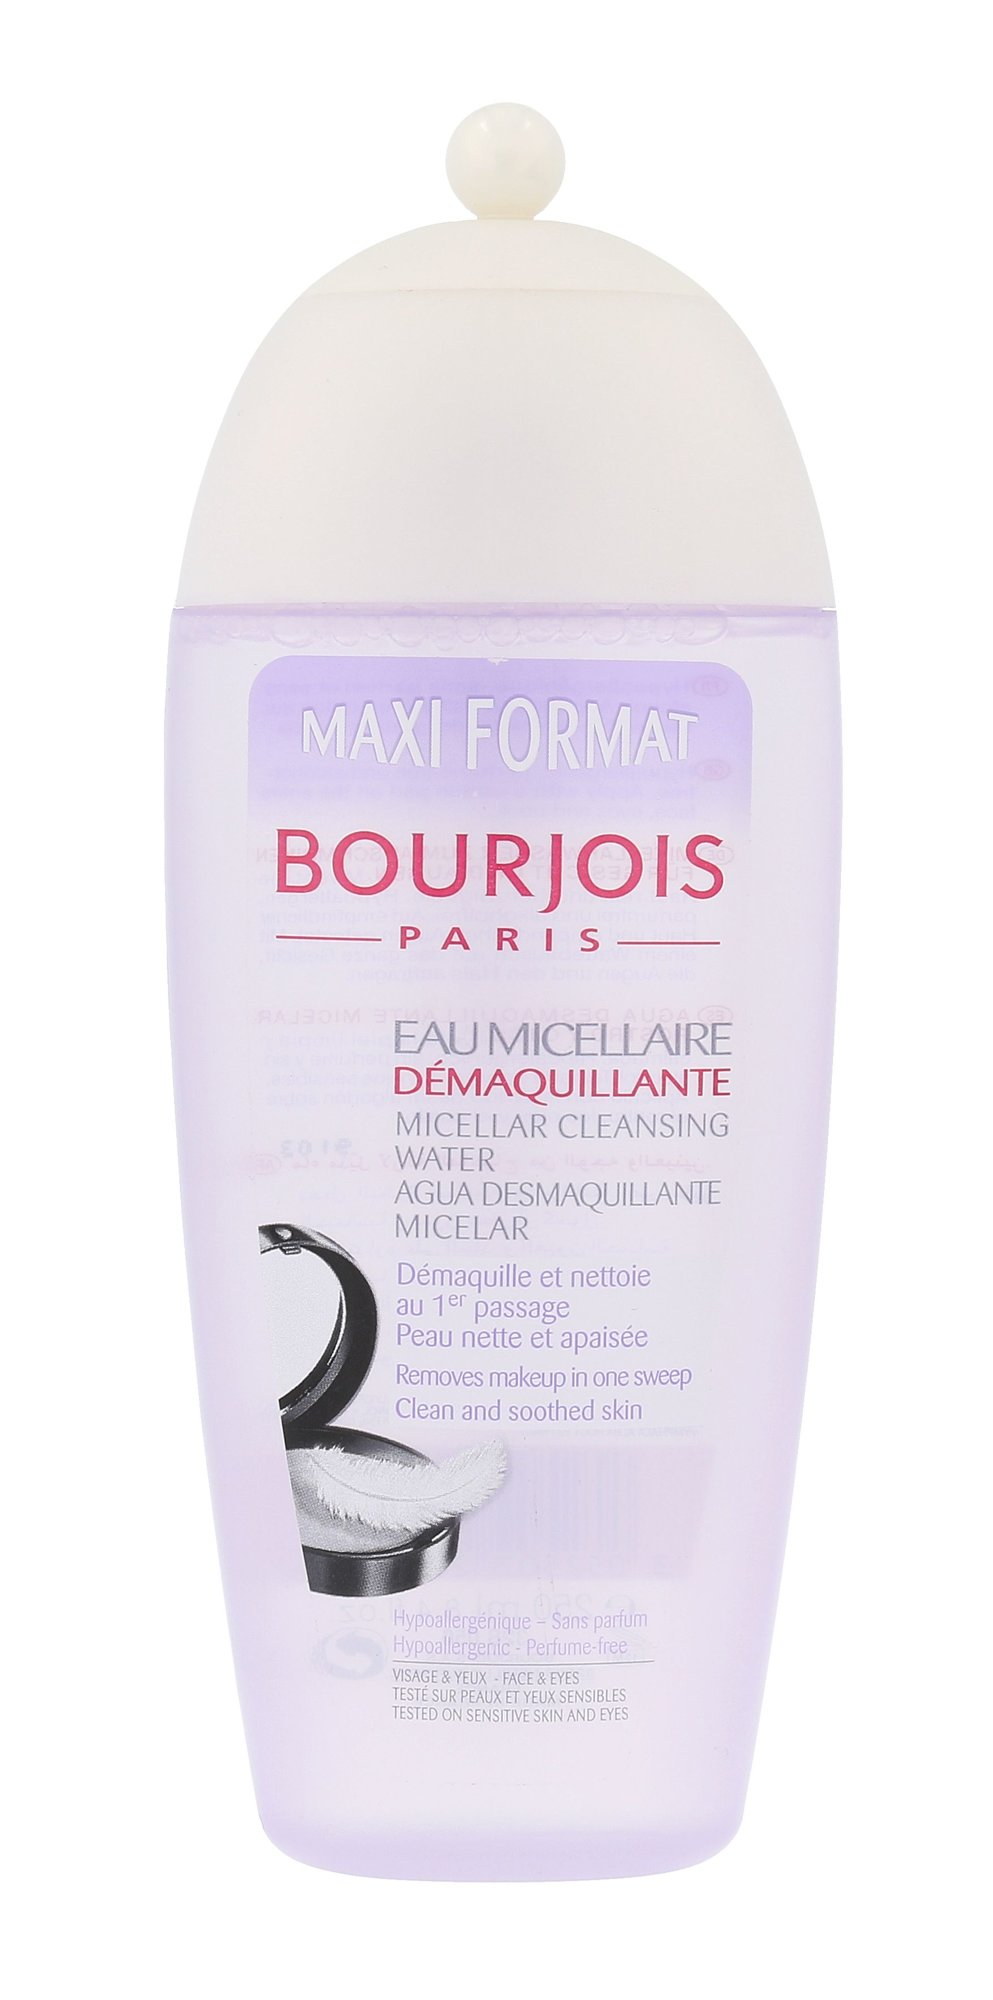 BOURJOIS Paris Micellar Cleansing Water Cosmetic 250ml